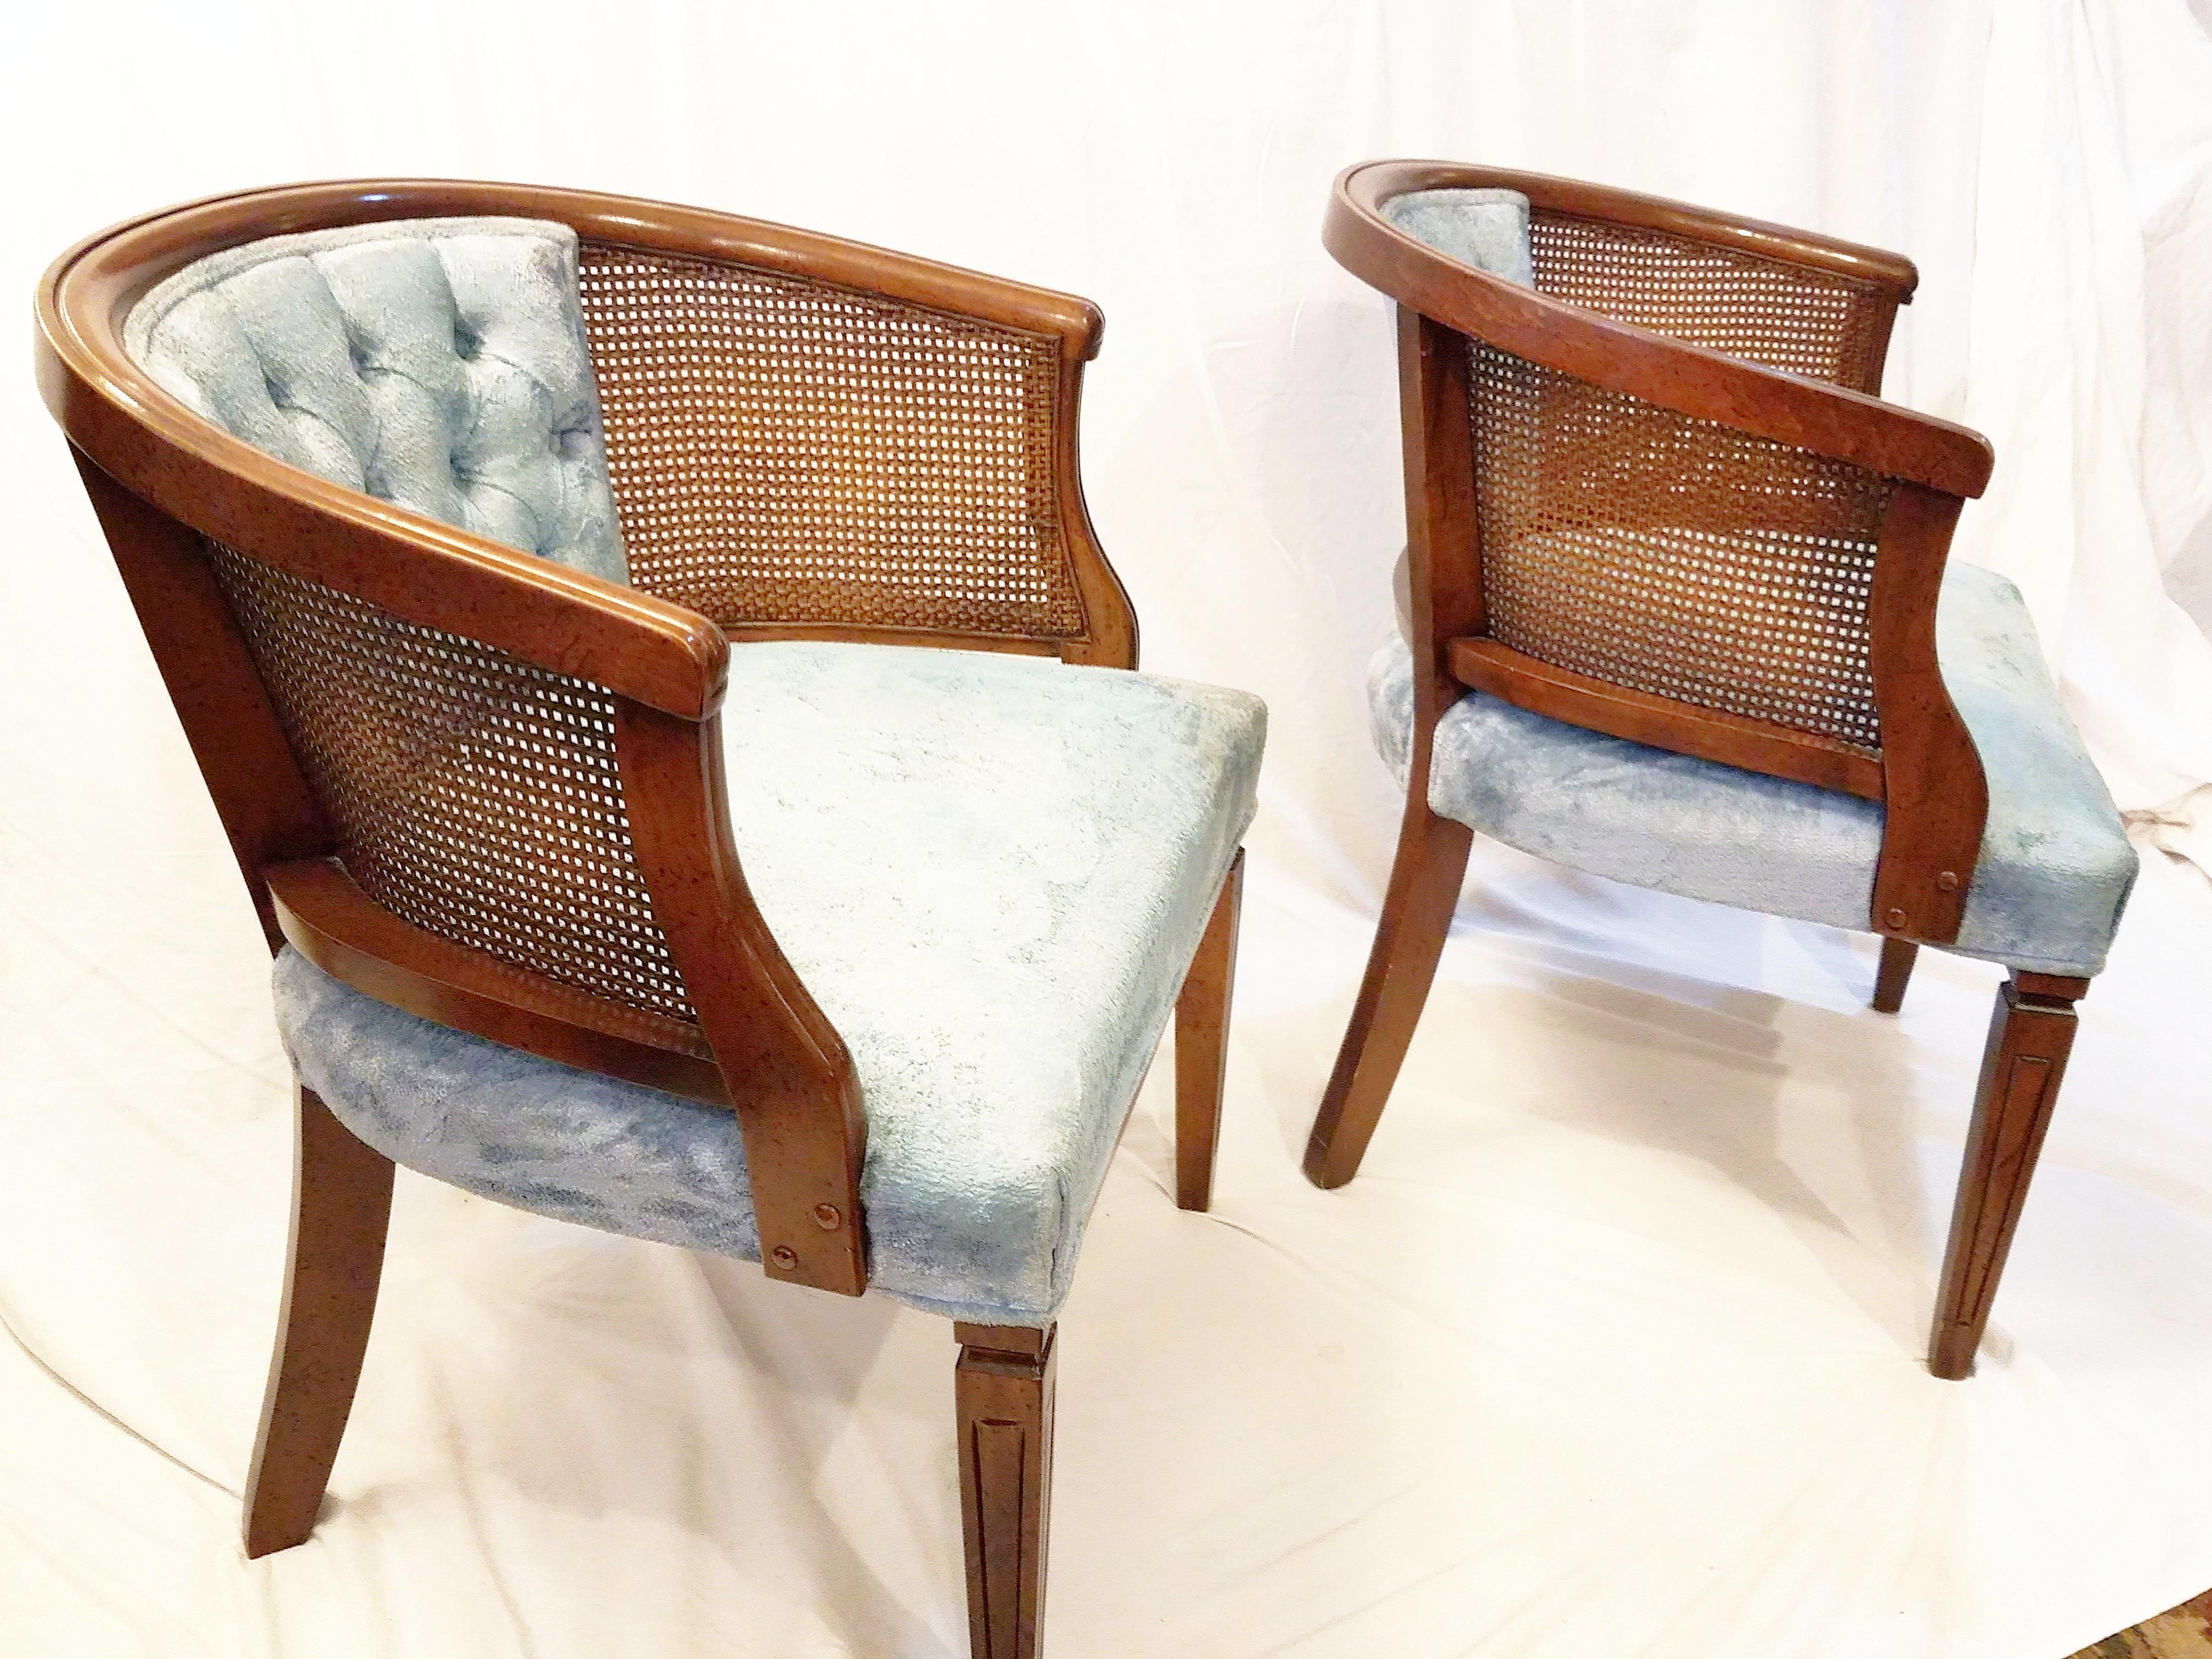 Vintage Wood U0026 Cane Barrel Chairs   A Pair   Image 3 ...